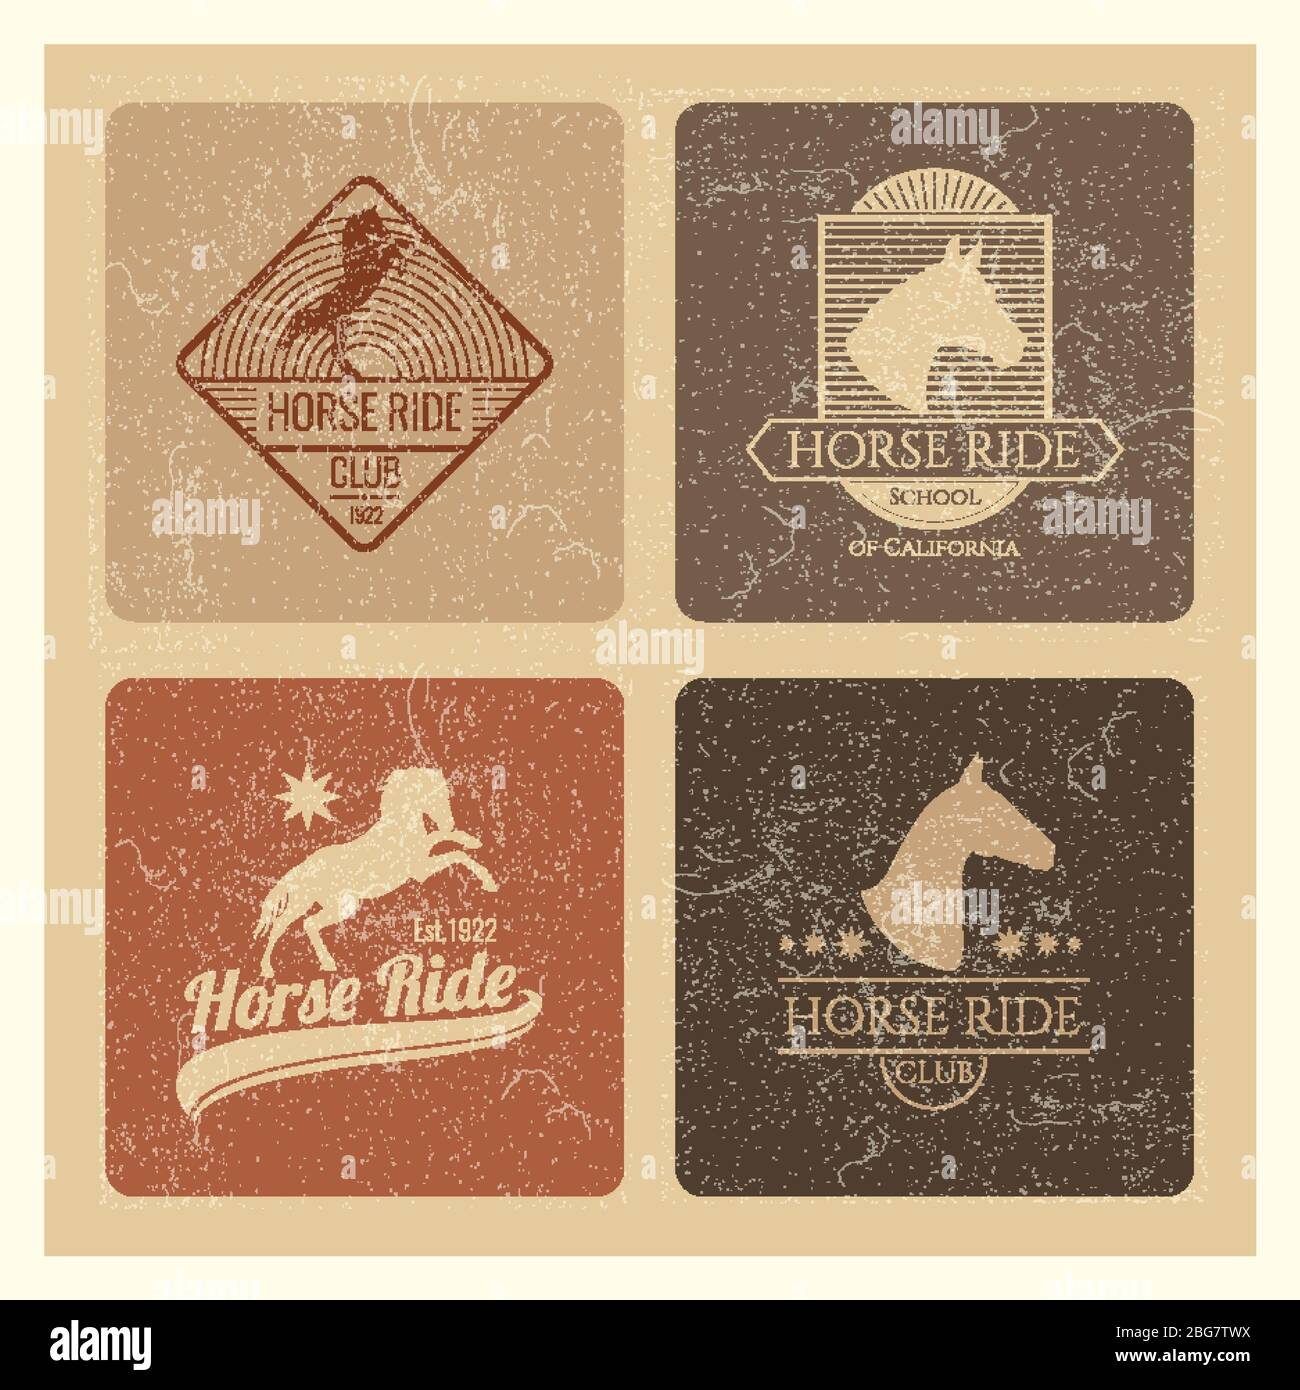 Horse Ride Club Vintage Retro Emblem Set Isolated Vector Illustration Stock Vector Image Art Alamy